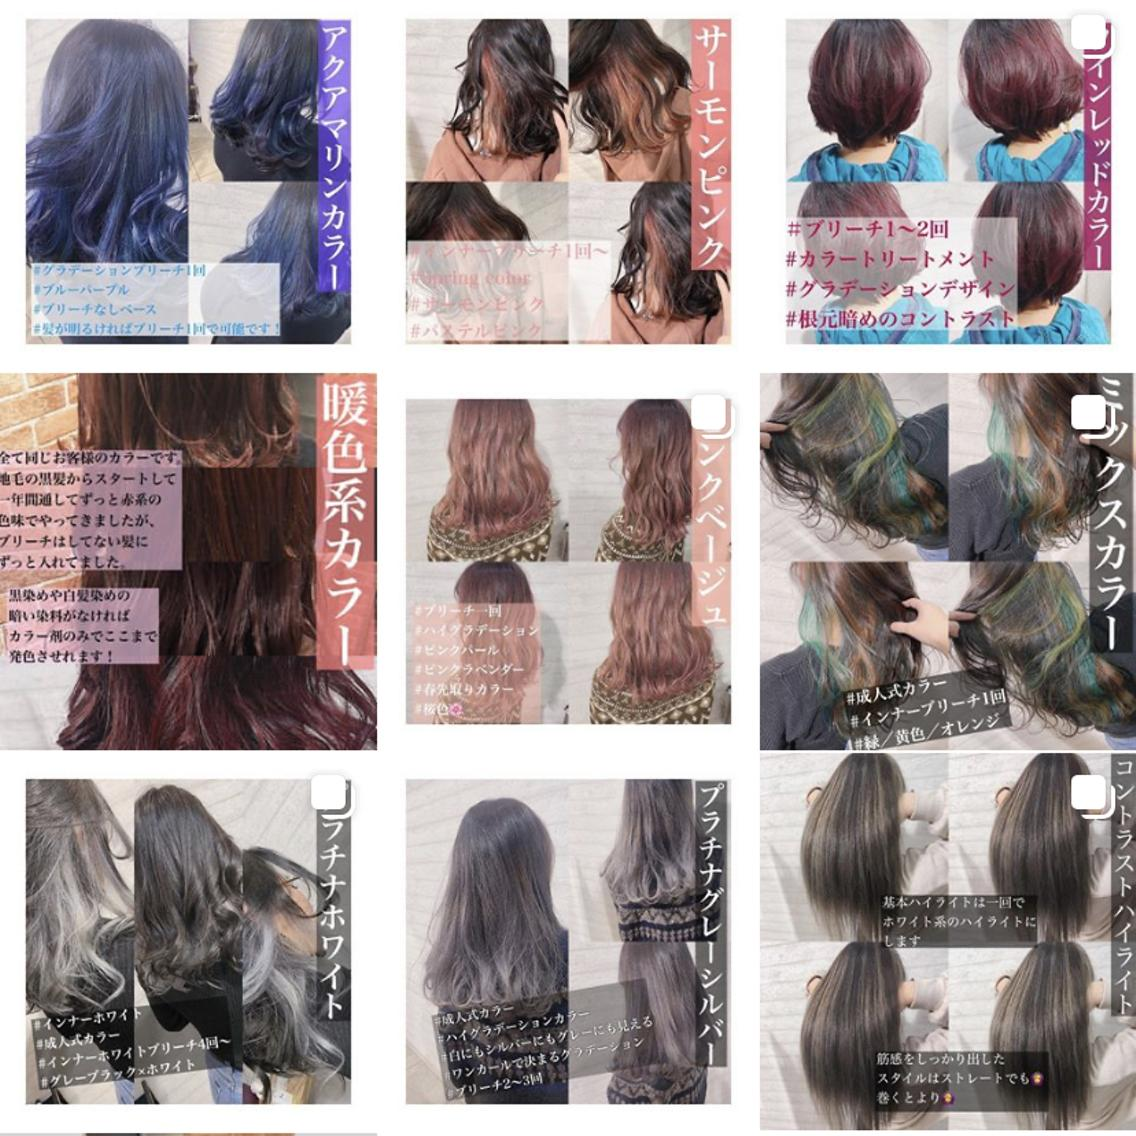 senses hair design所属・kimurayuyaの掲載